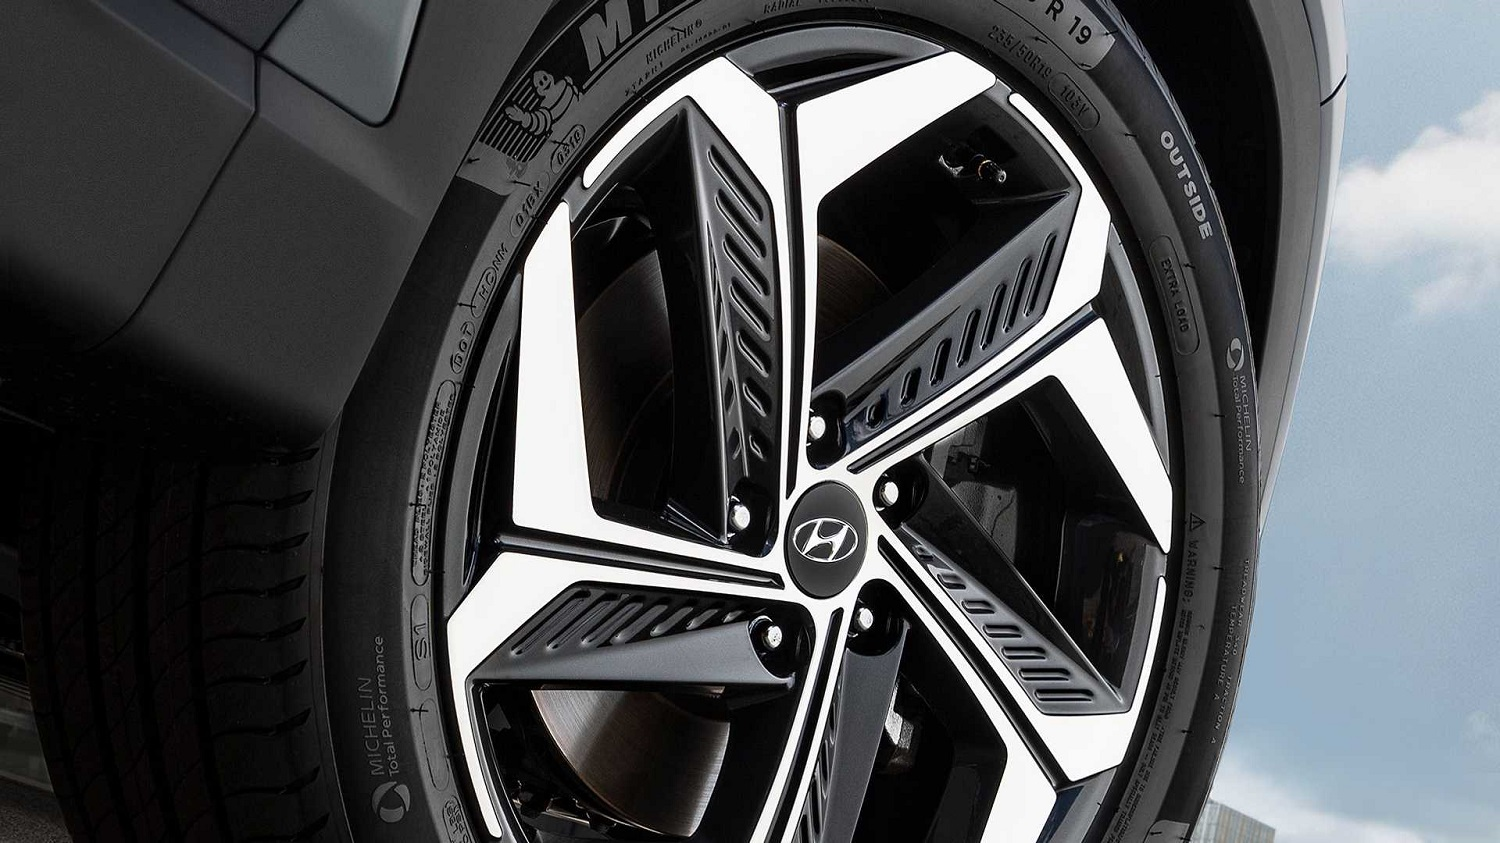 2022 Hyundai Tuscon wheel and tire